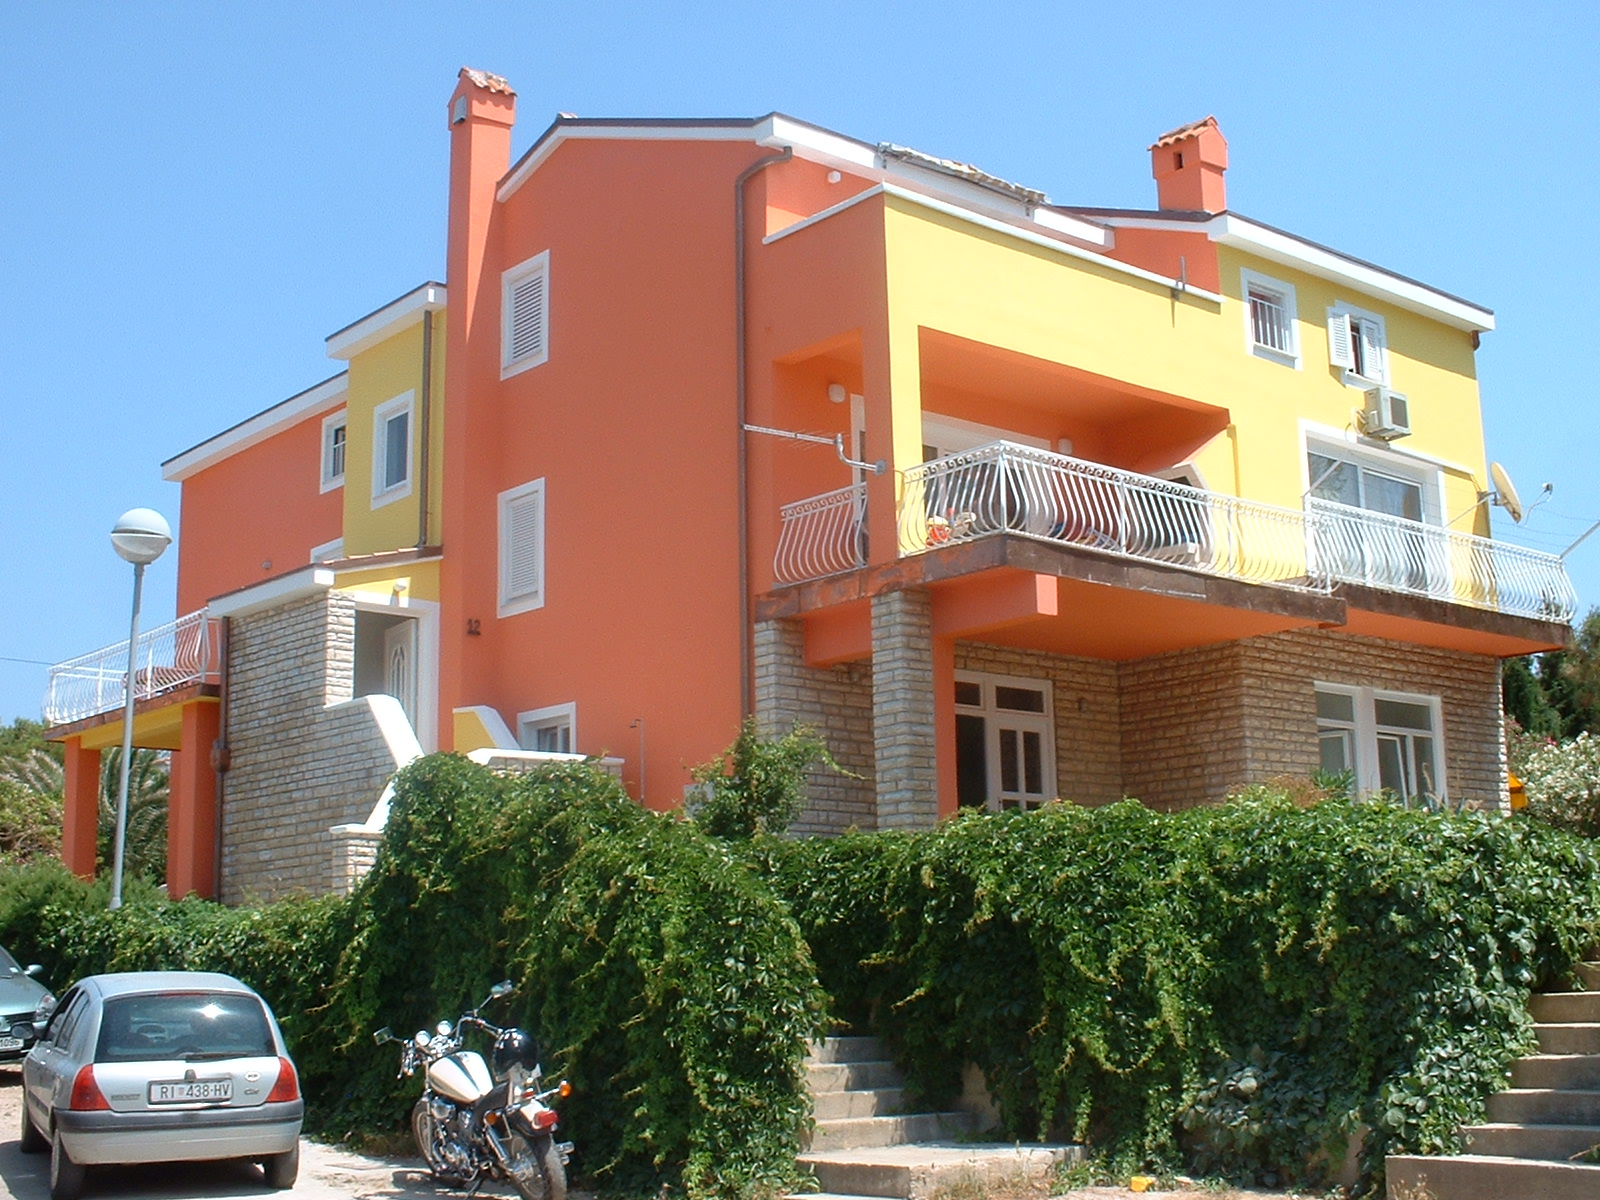 Apartment Mali Losinj 8006b Hotel - room photo 4070933